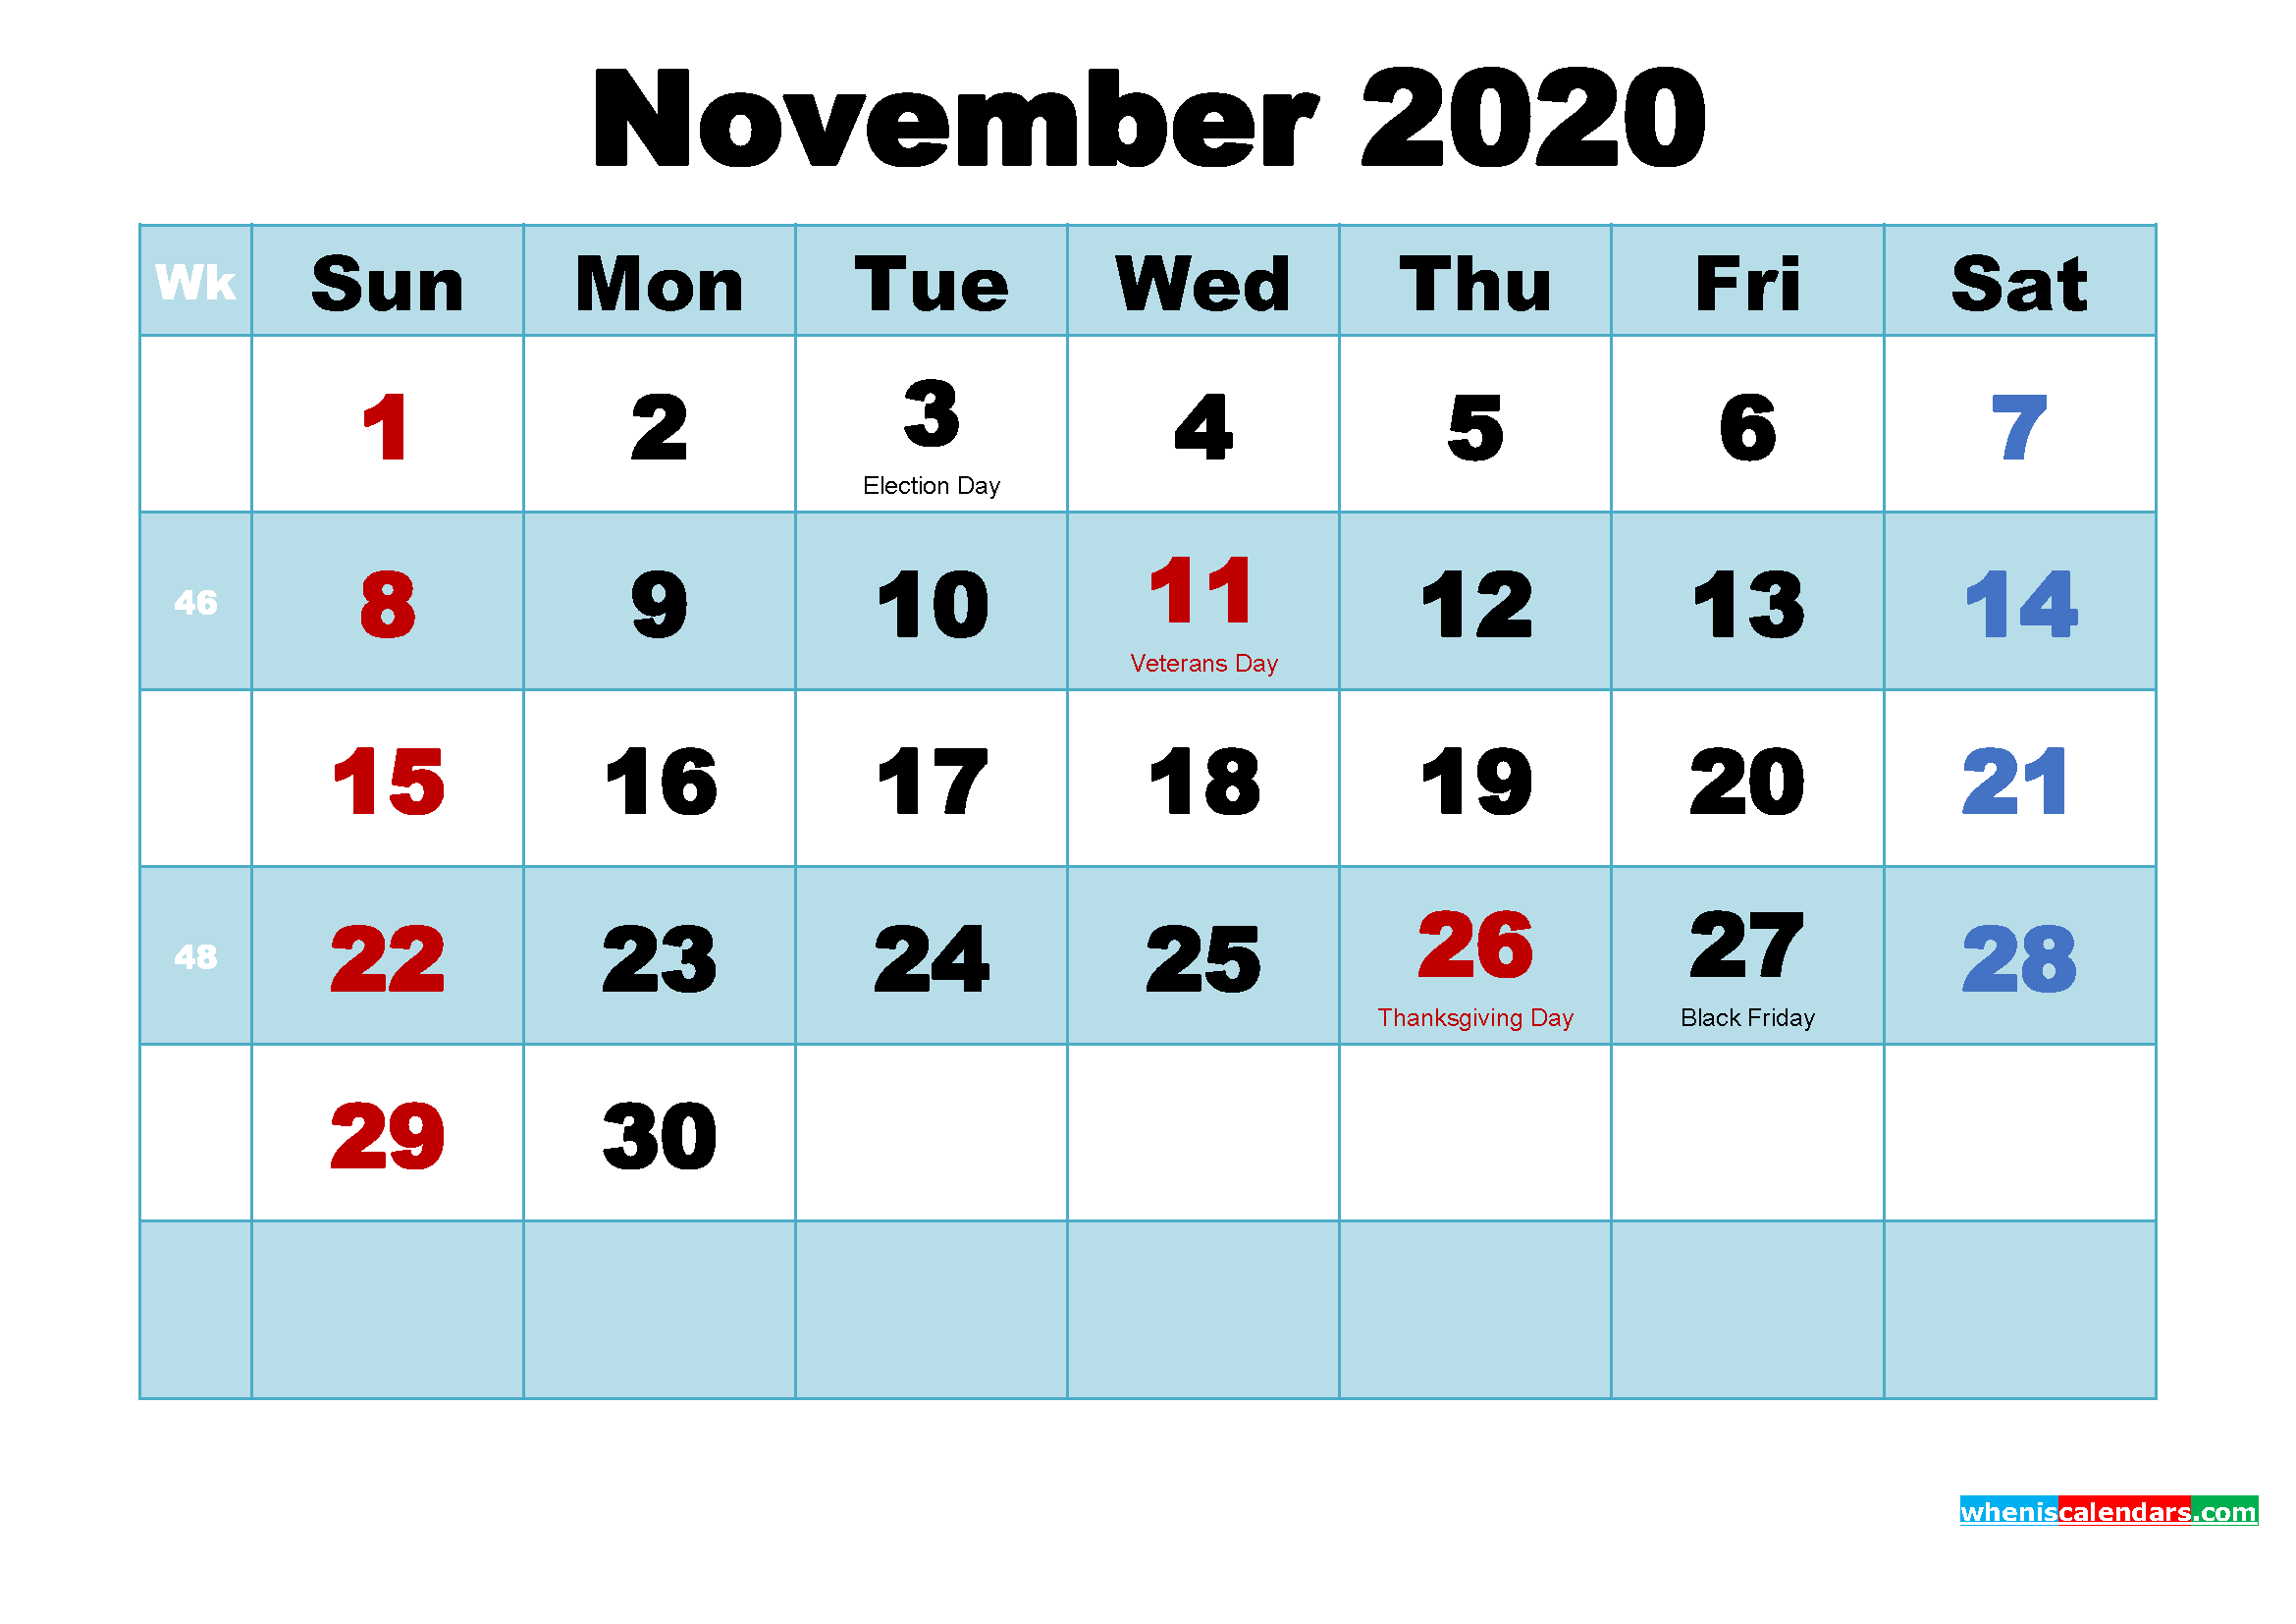 November 2020 Free Printable Calendar with Holidays